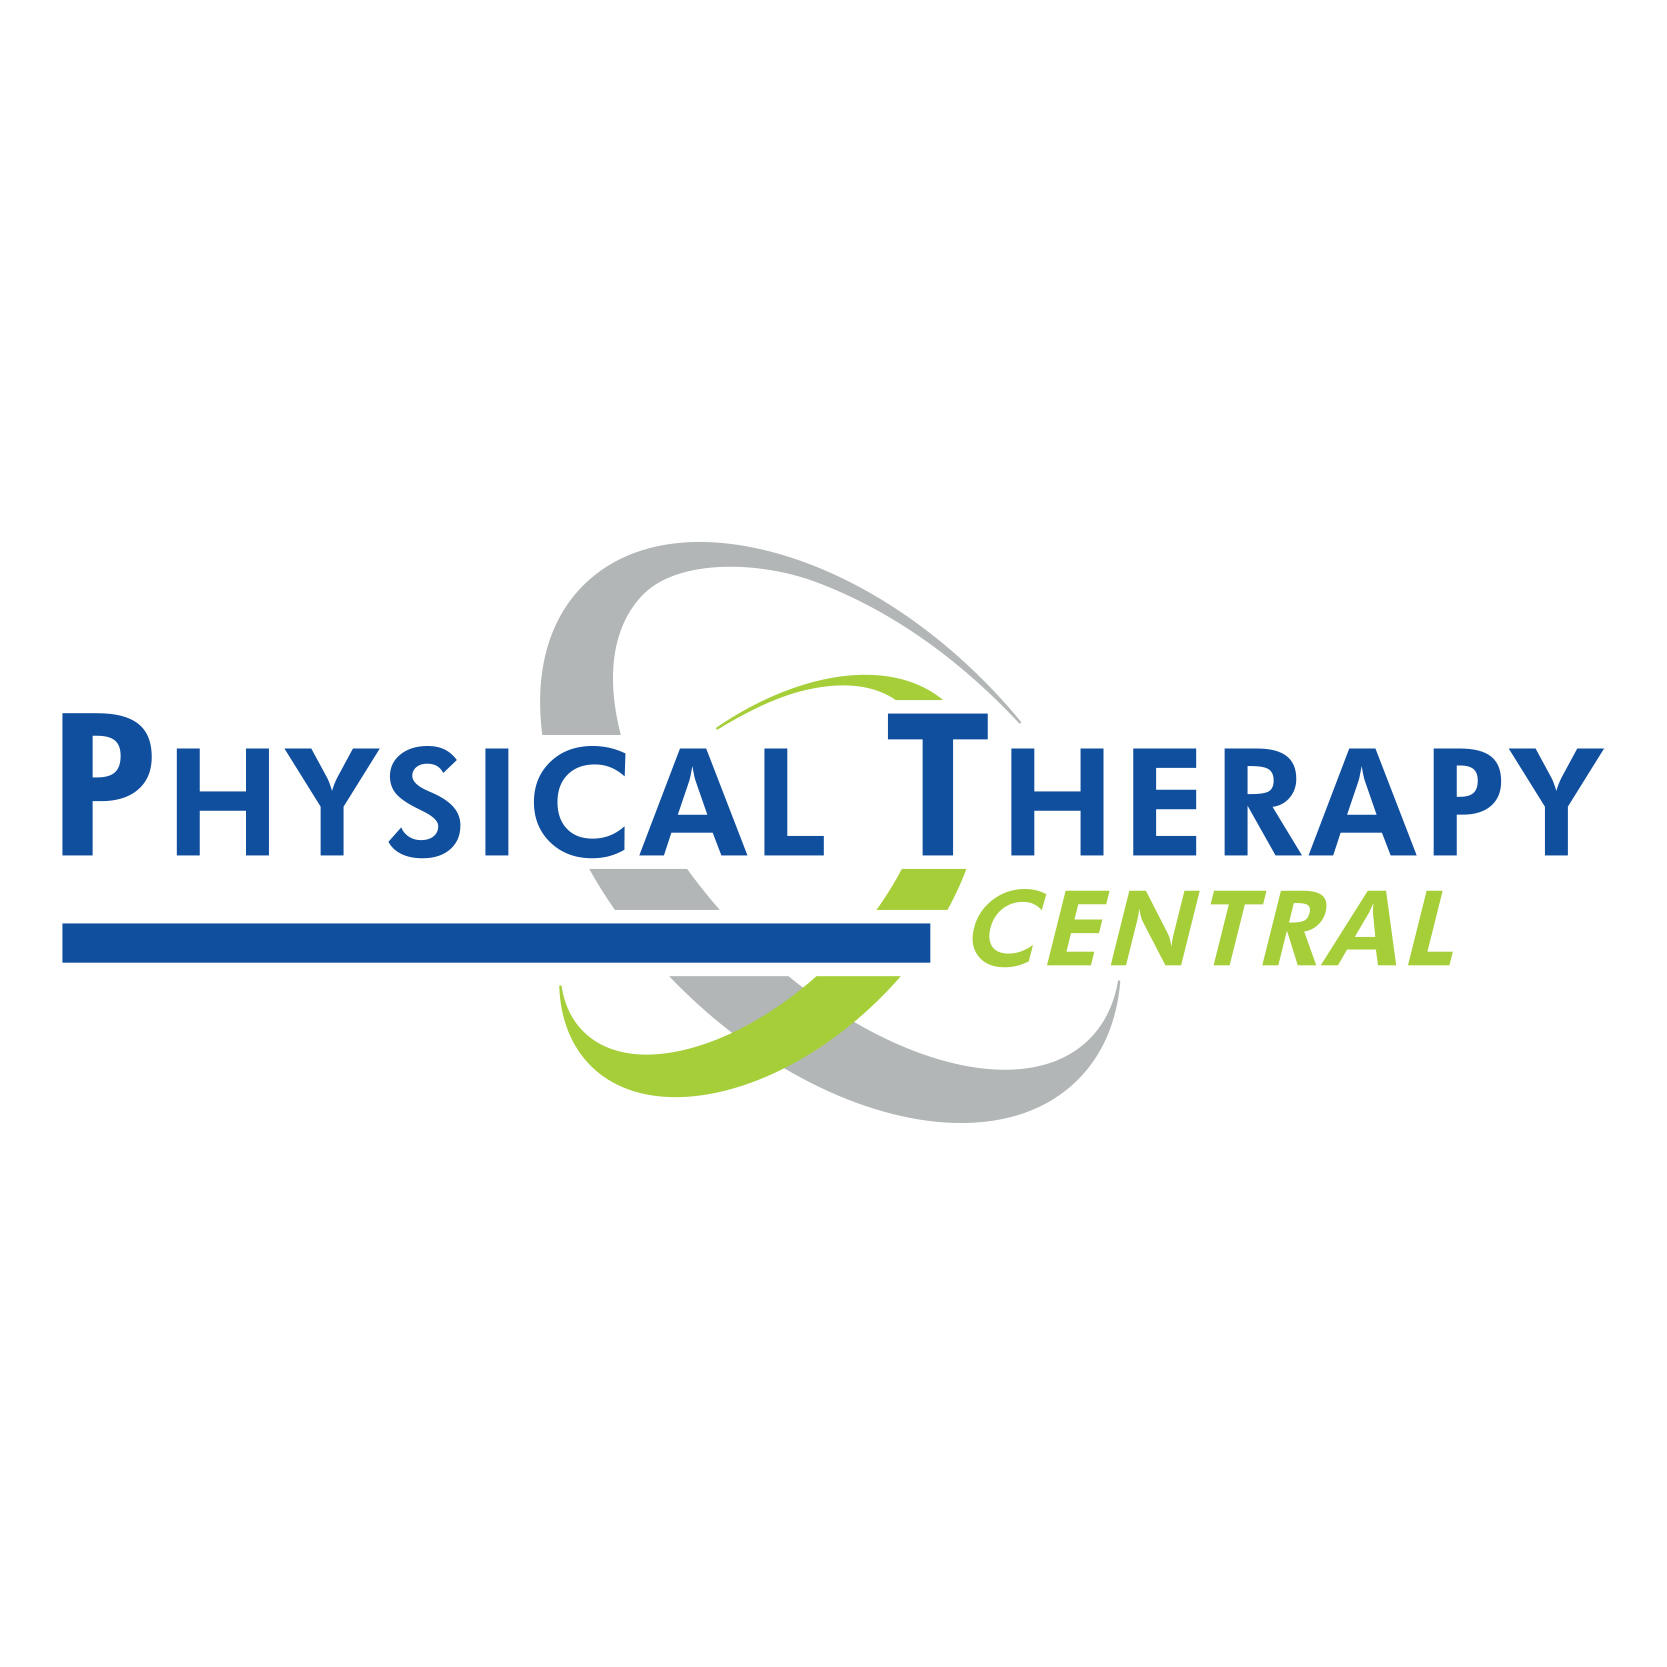 Physical Therapy Central